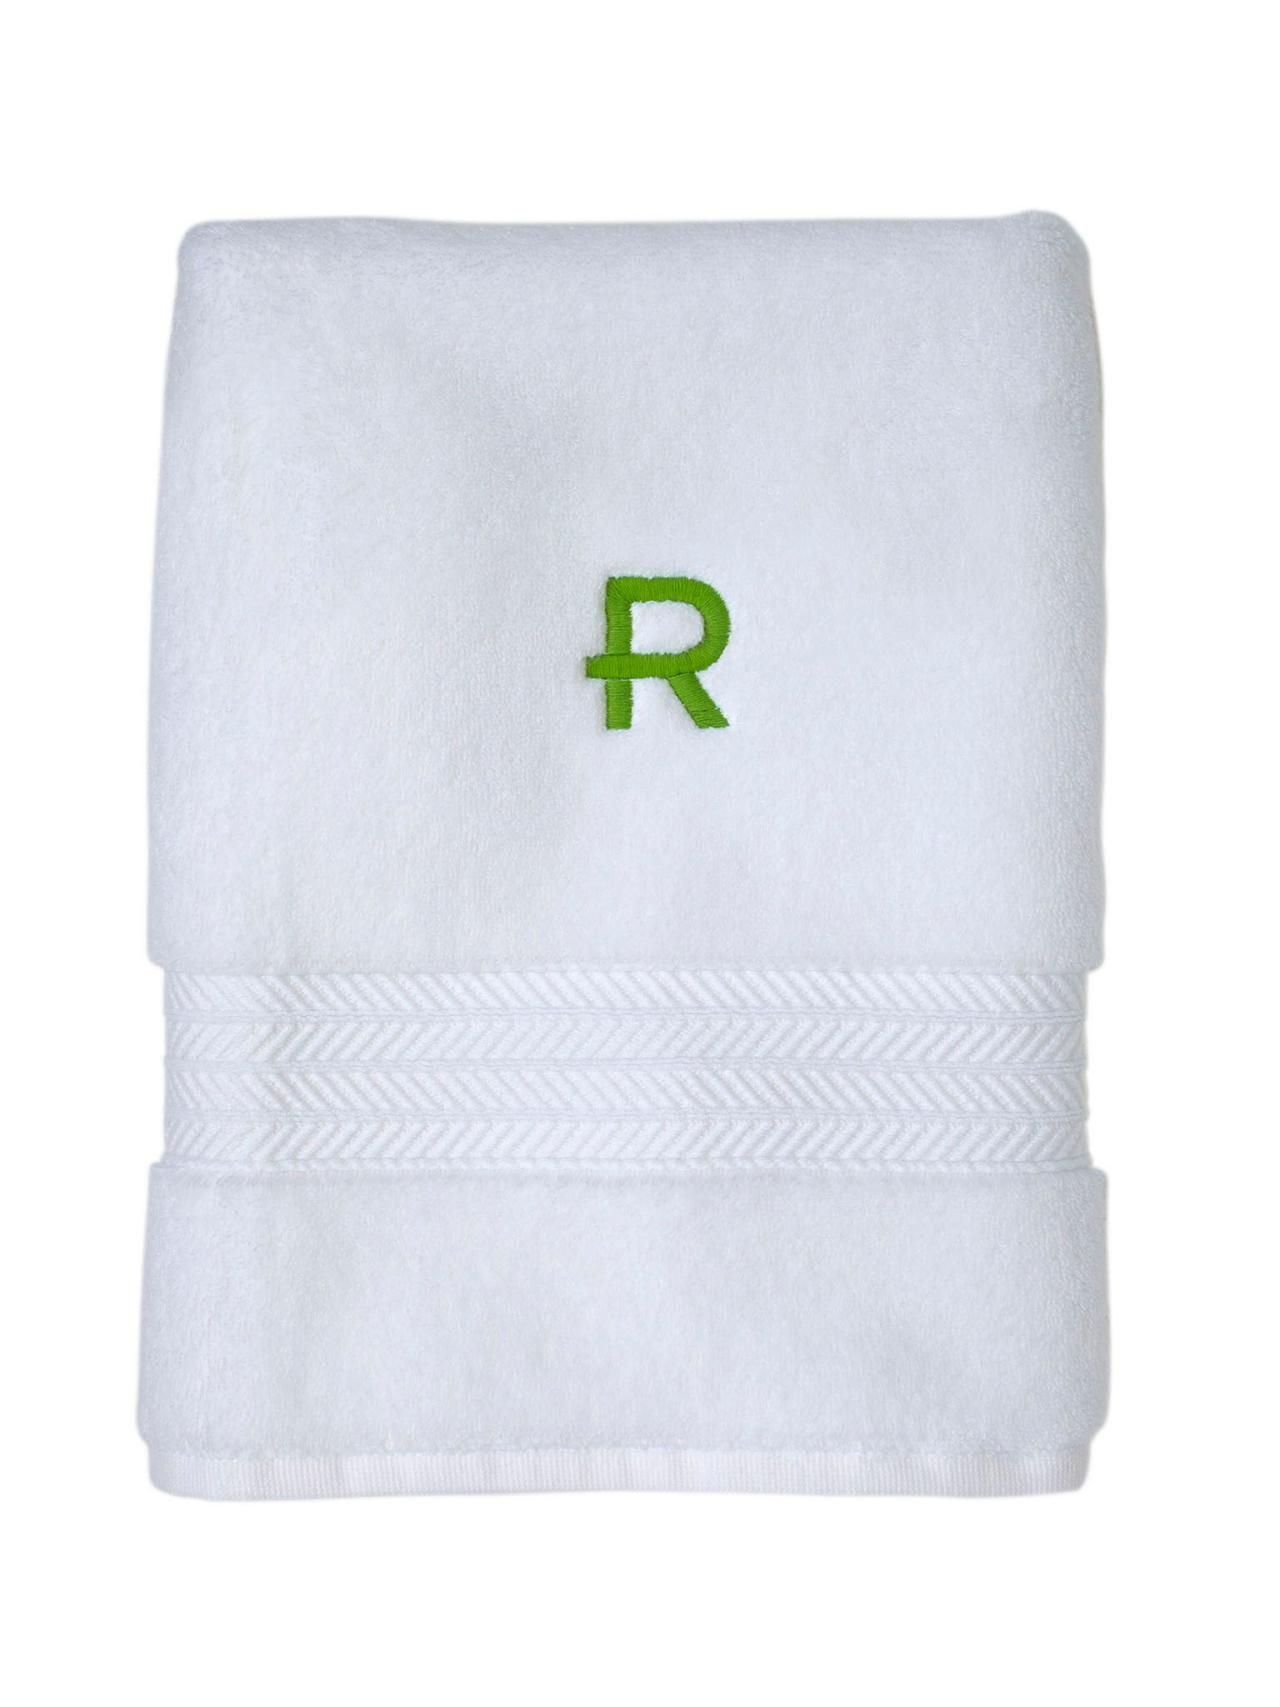 HGTV - Monogrammed Towels